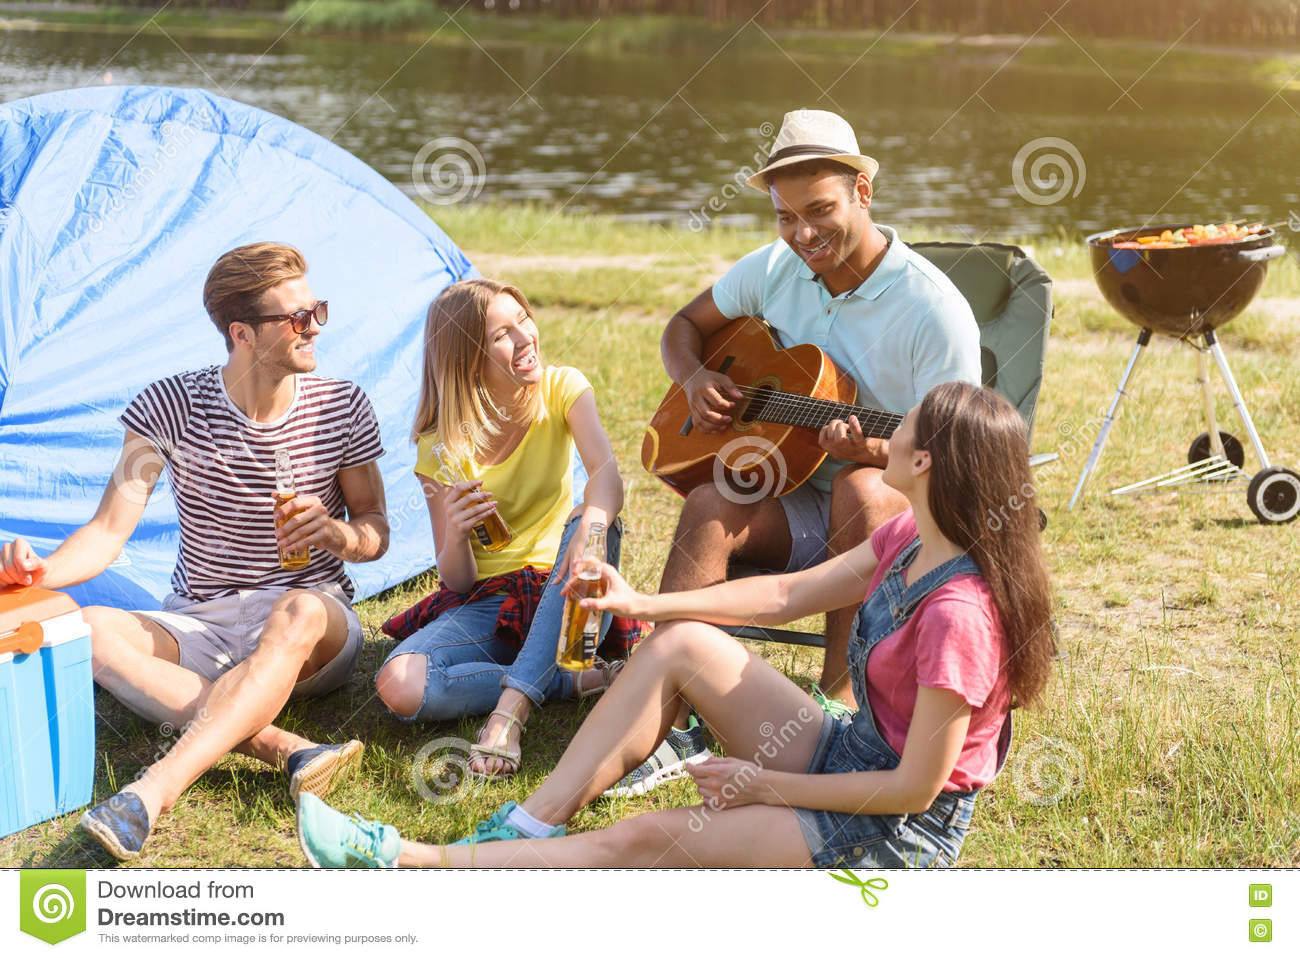 Cheerful young people making fun in nature stock photo for Cheerful nature